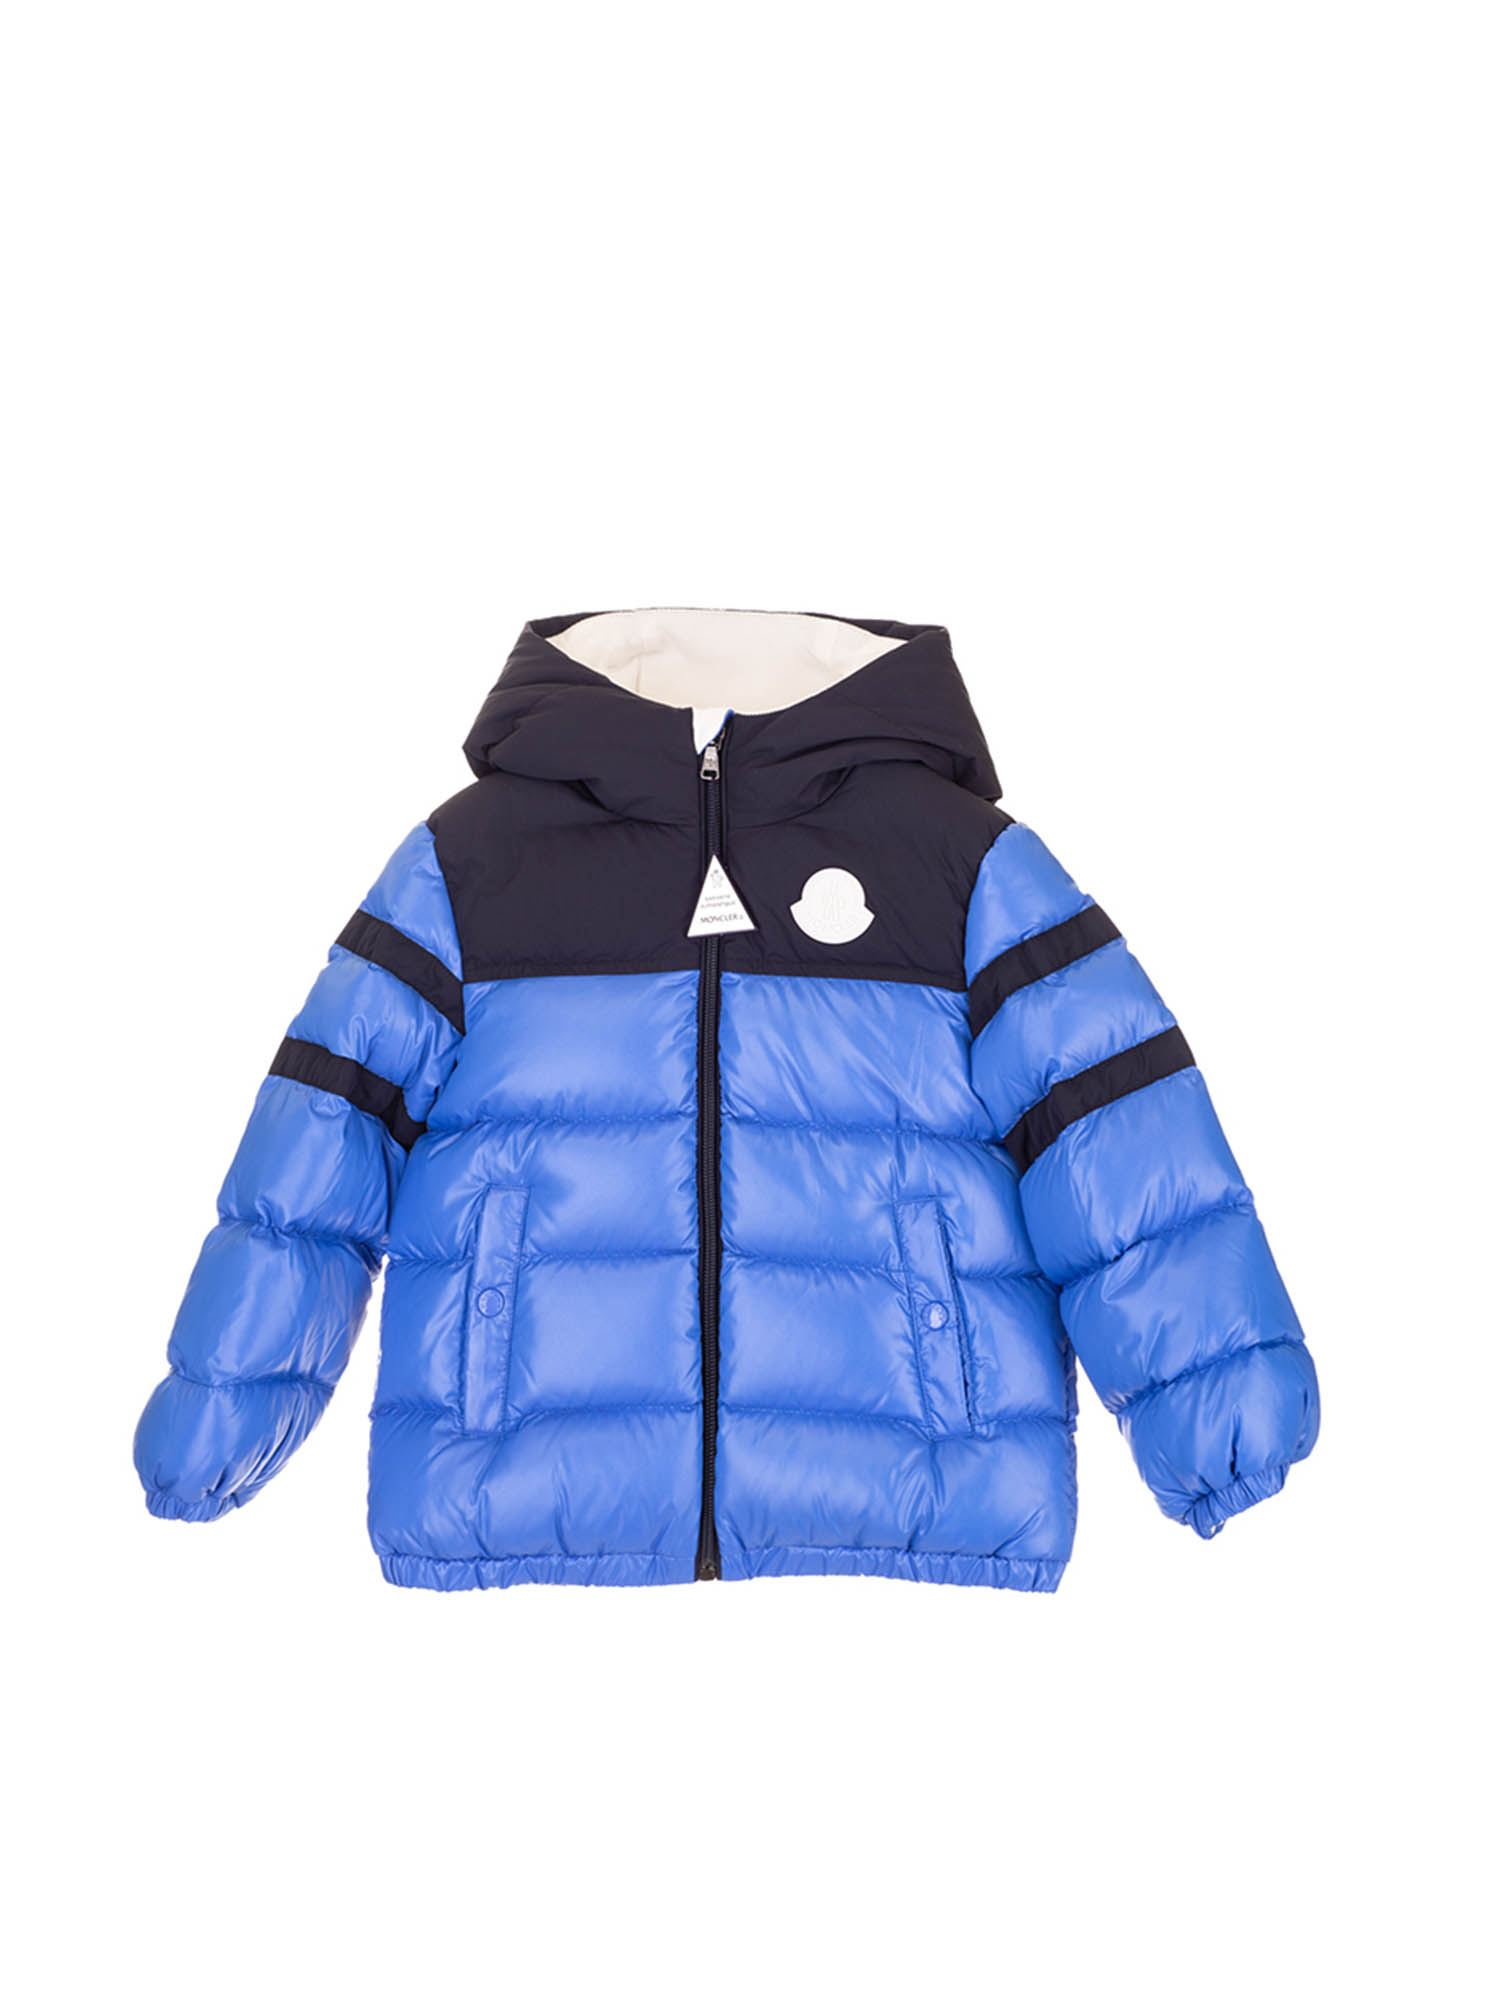 Moncler Jr TWO-TONE LOGO DOWN JACKET IN BLUE AND BLACK